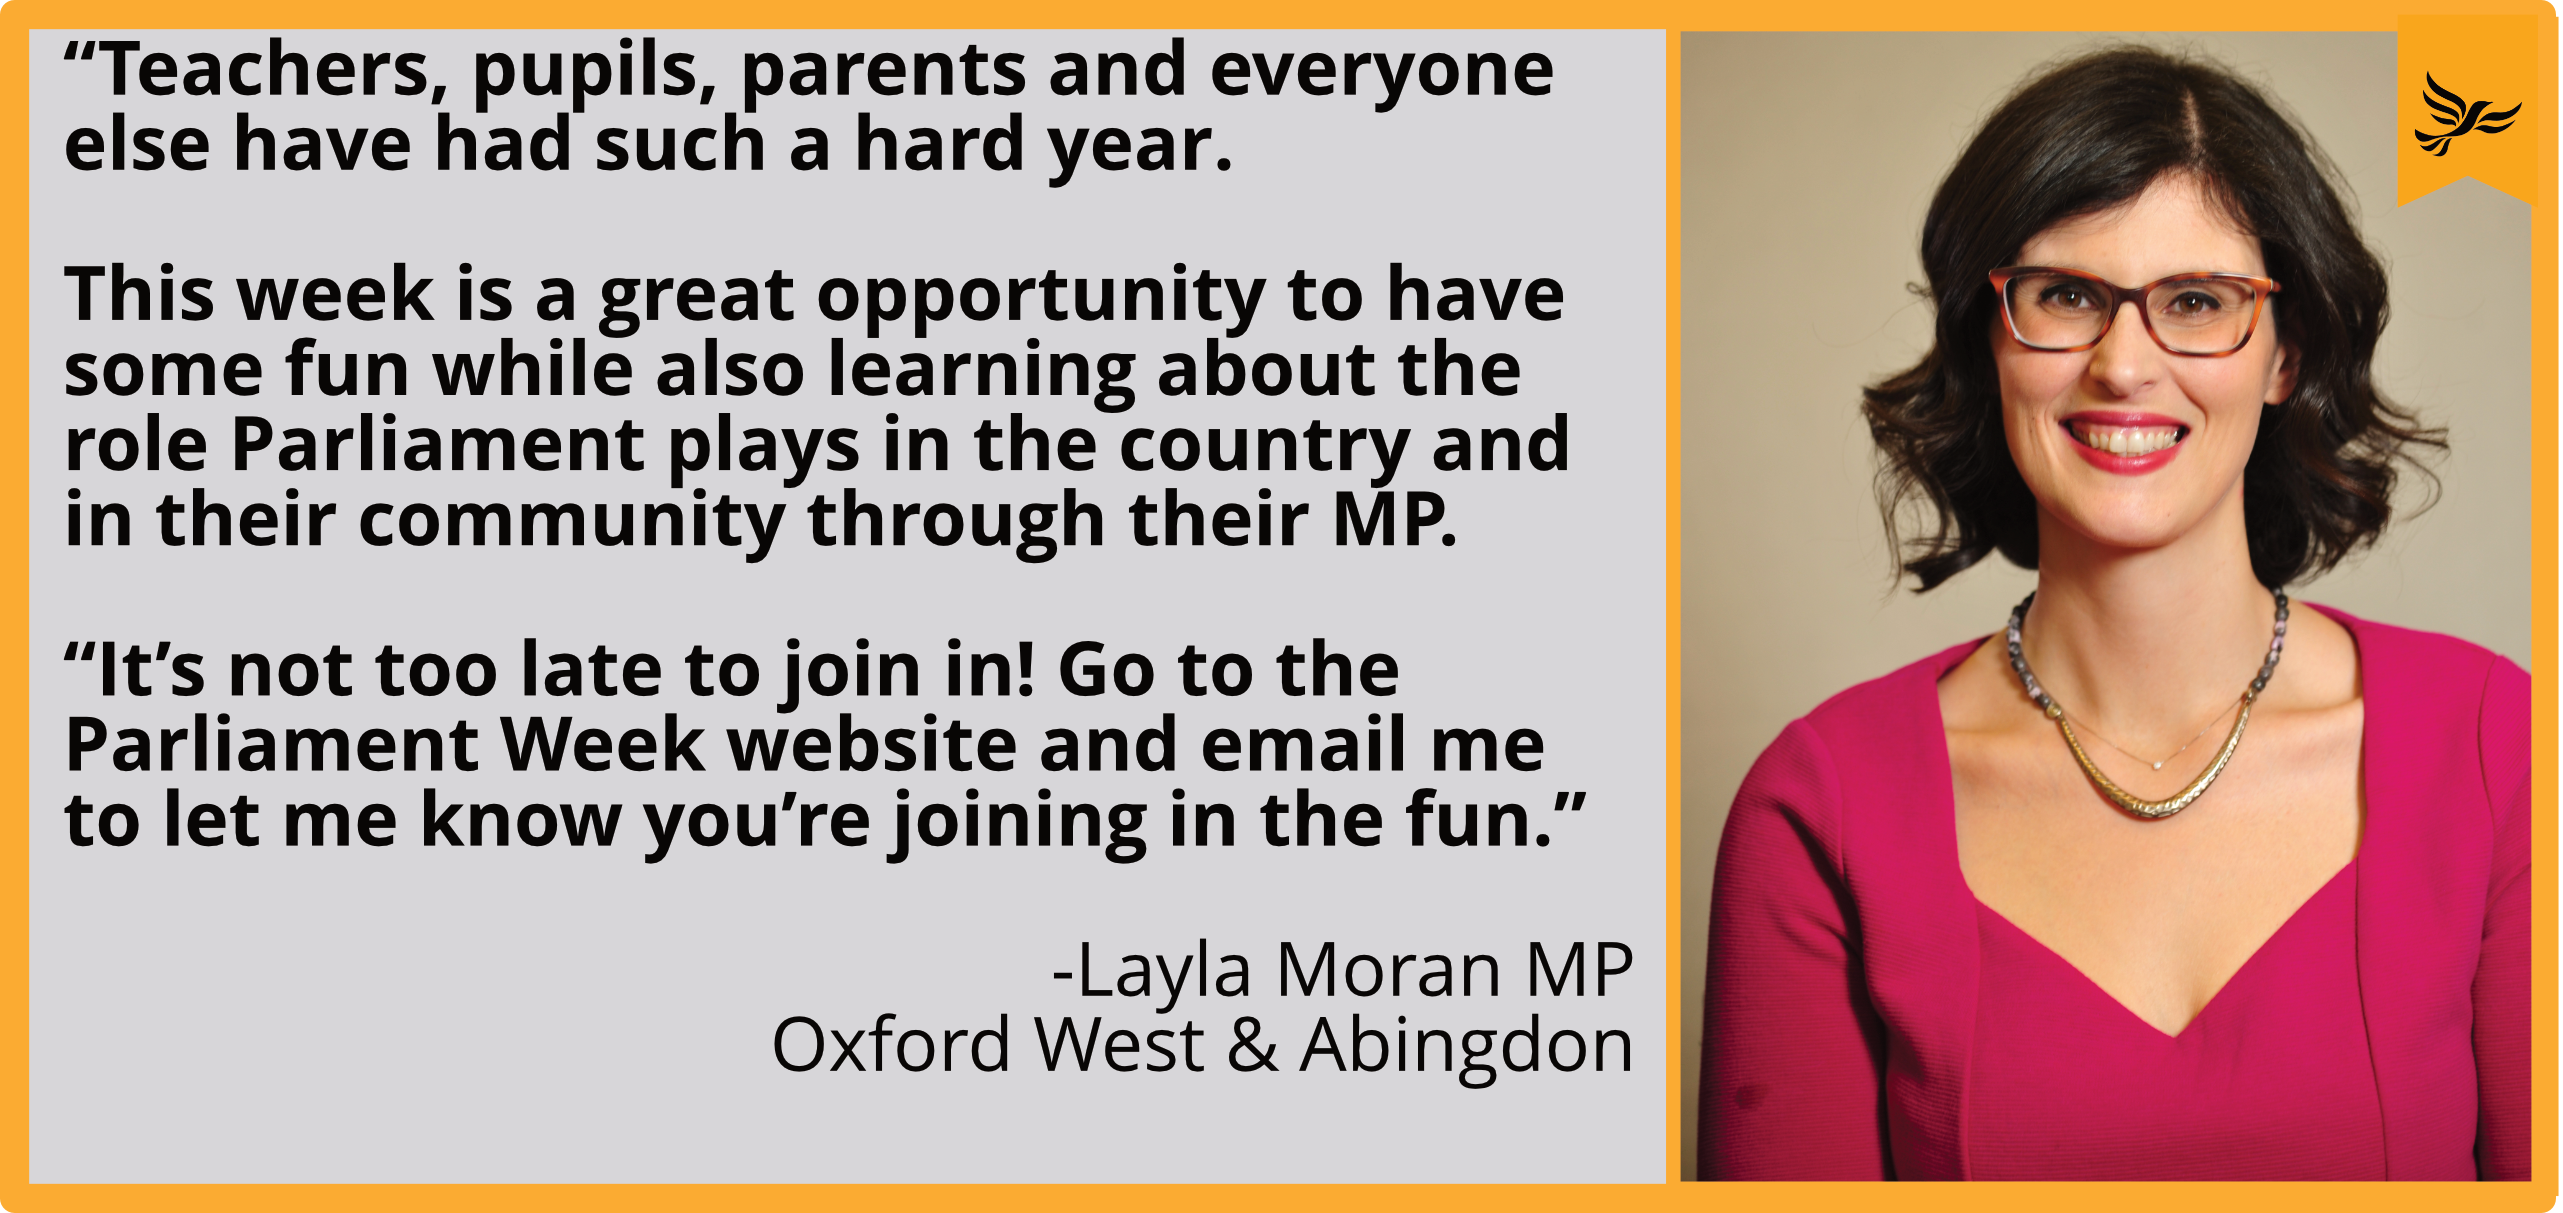 """""""Teachers, pupils, parents and everyone else have had such a hard year. This week is a great opportunity to have some fun while also learning about the role Parliament plays in the country and in their community through their MP.     """"It's not too late to join in! Go to the Parliament Week website and email me to let me know you're joining in the fun."""""""